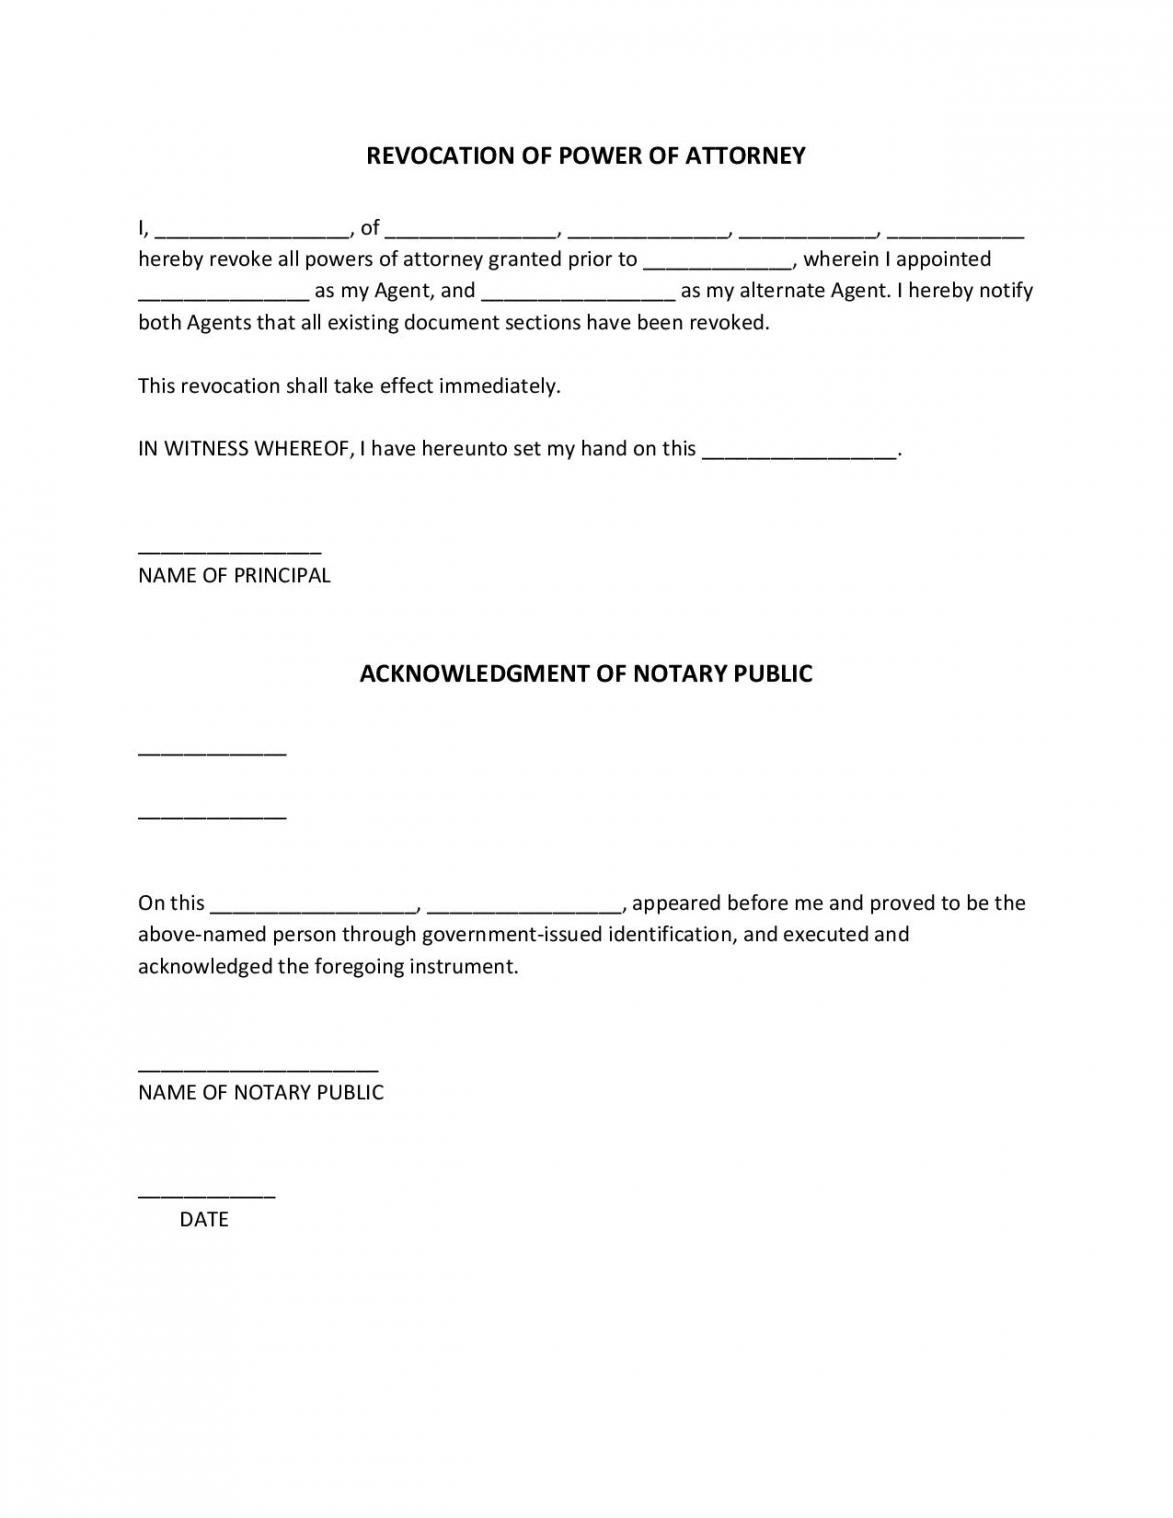 free free revocation of power of attorney forms pdf word power of attorney resignation letter template doc